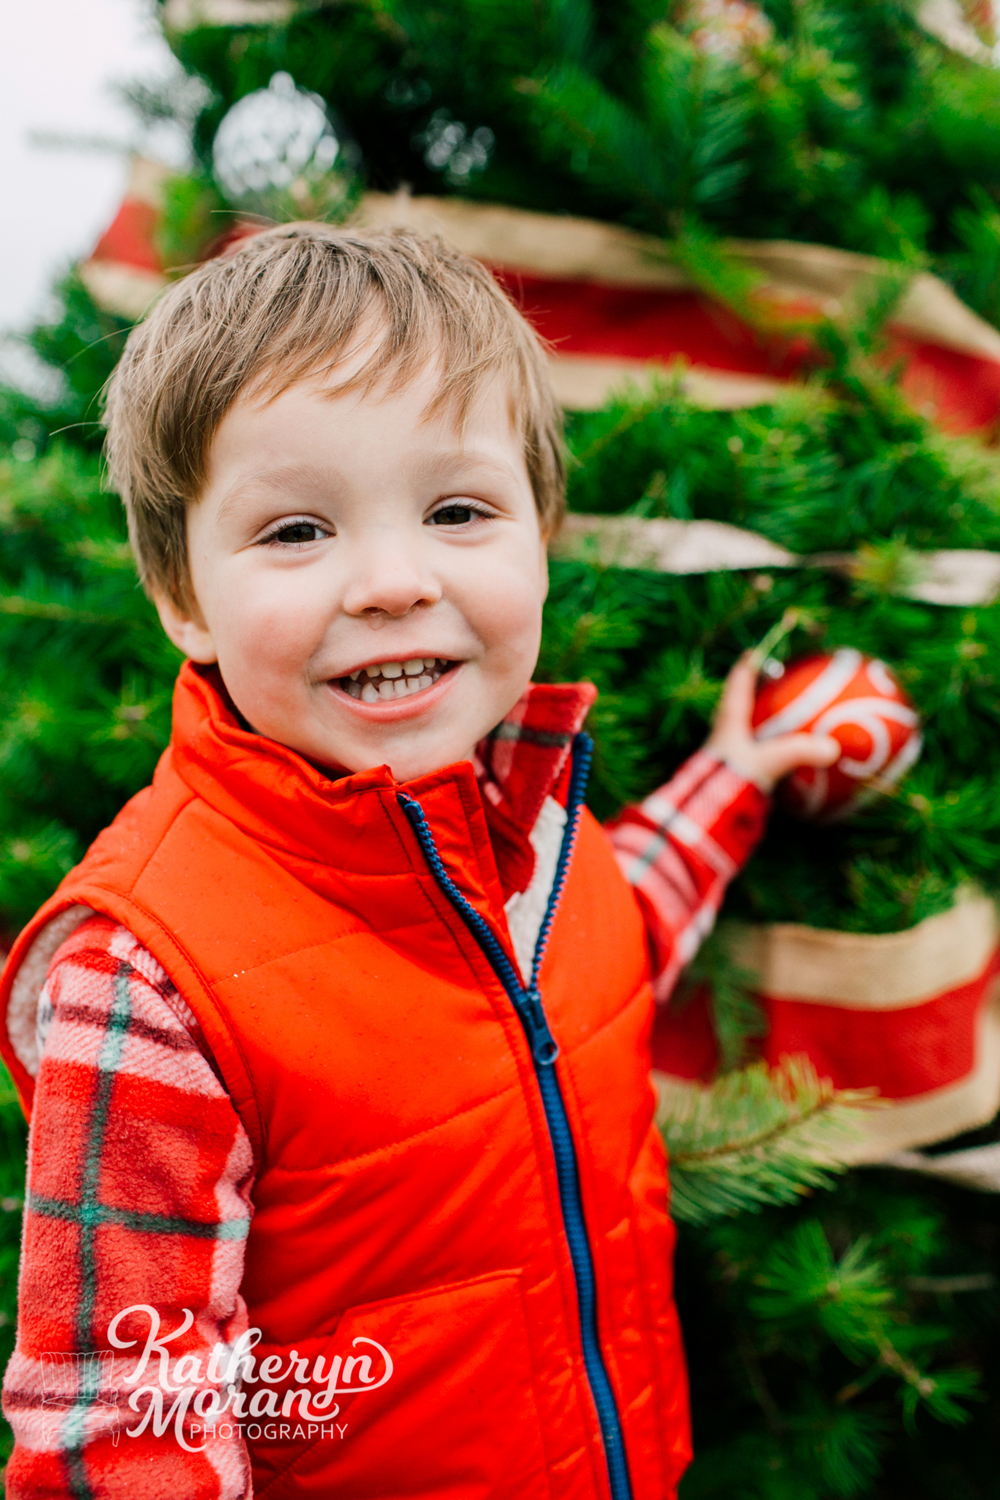 008-bellingham-holiday-mini-sessions-fullner-tree-farm-2017.jpg